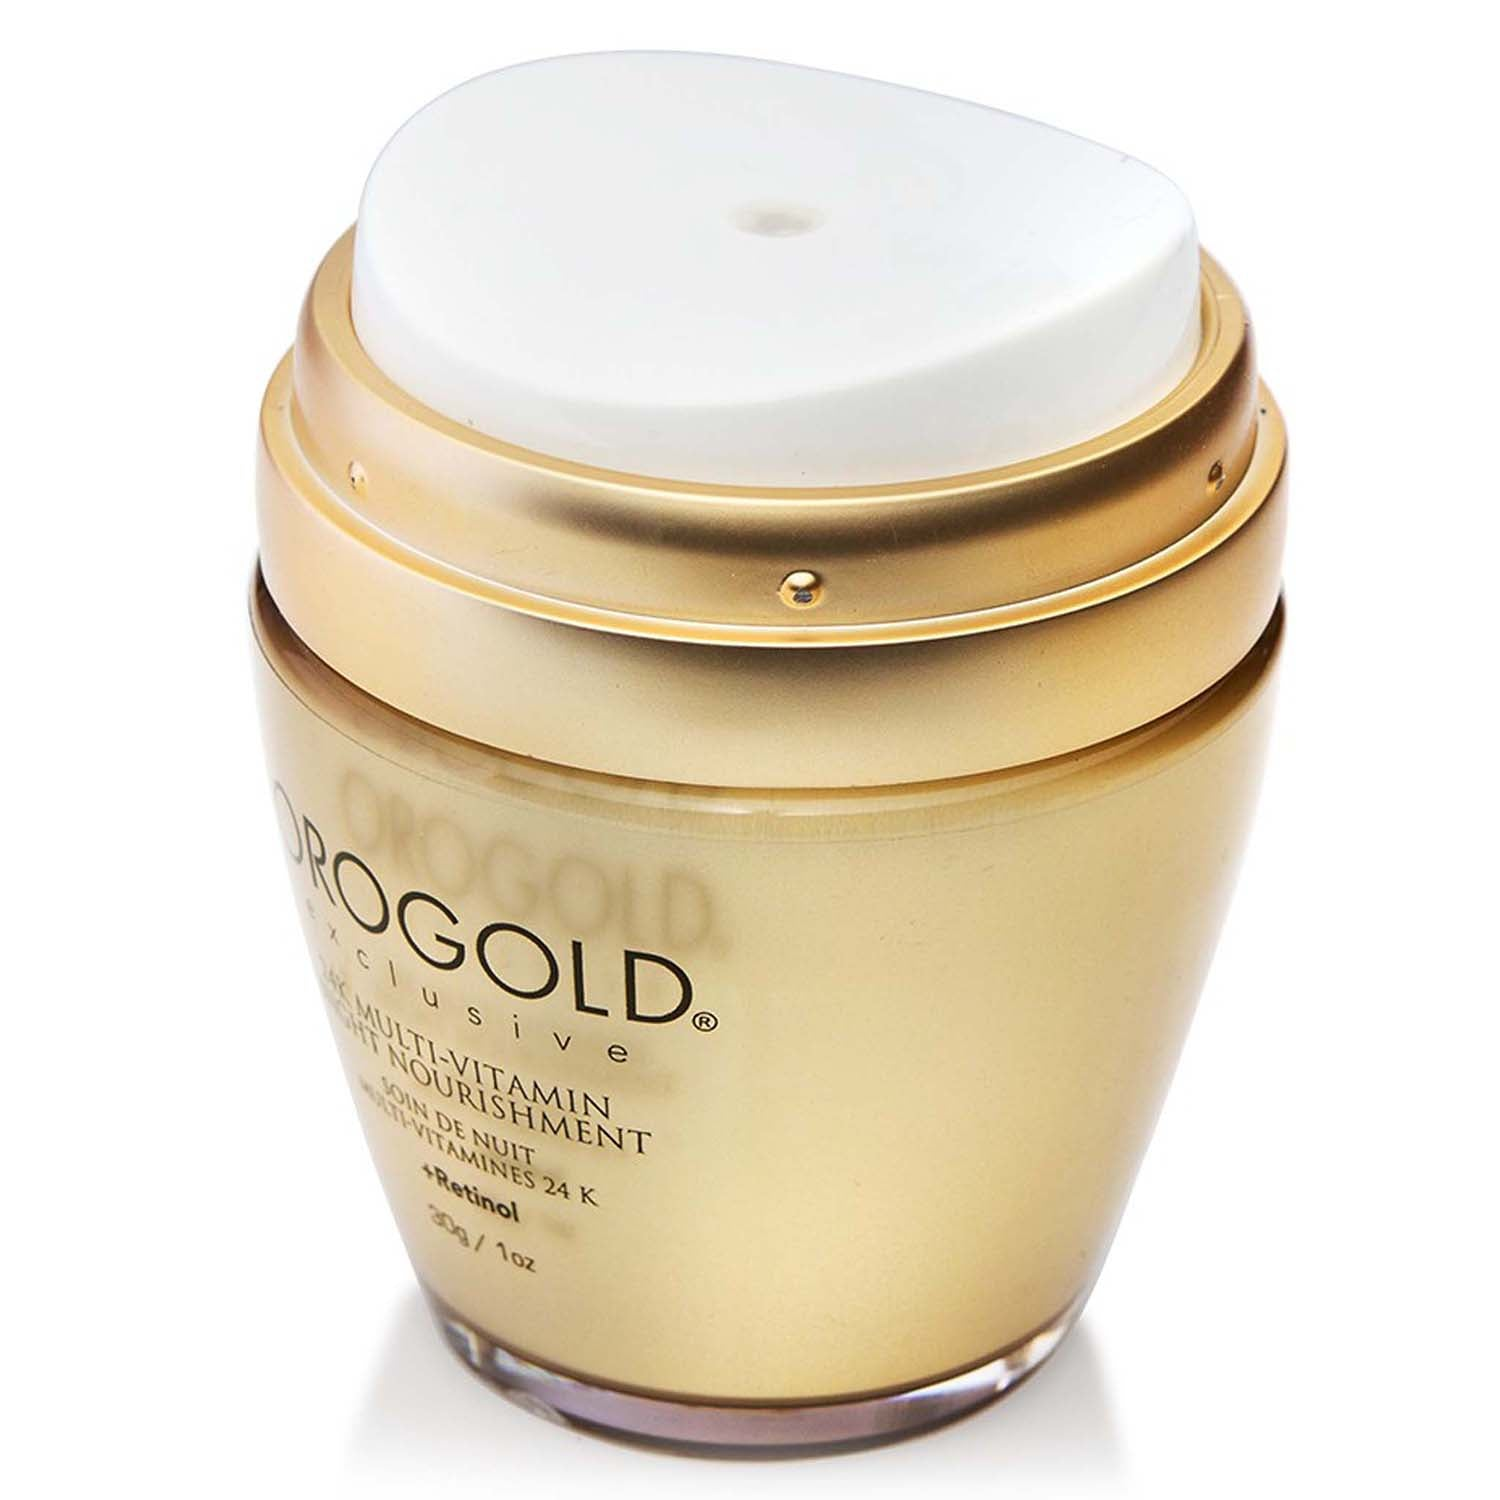 orogold retinol night cream